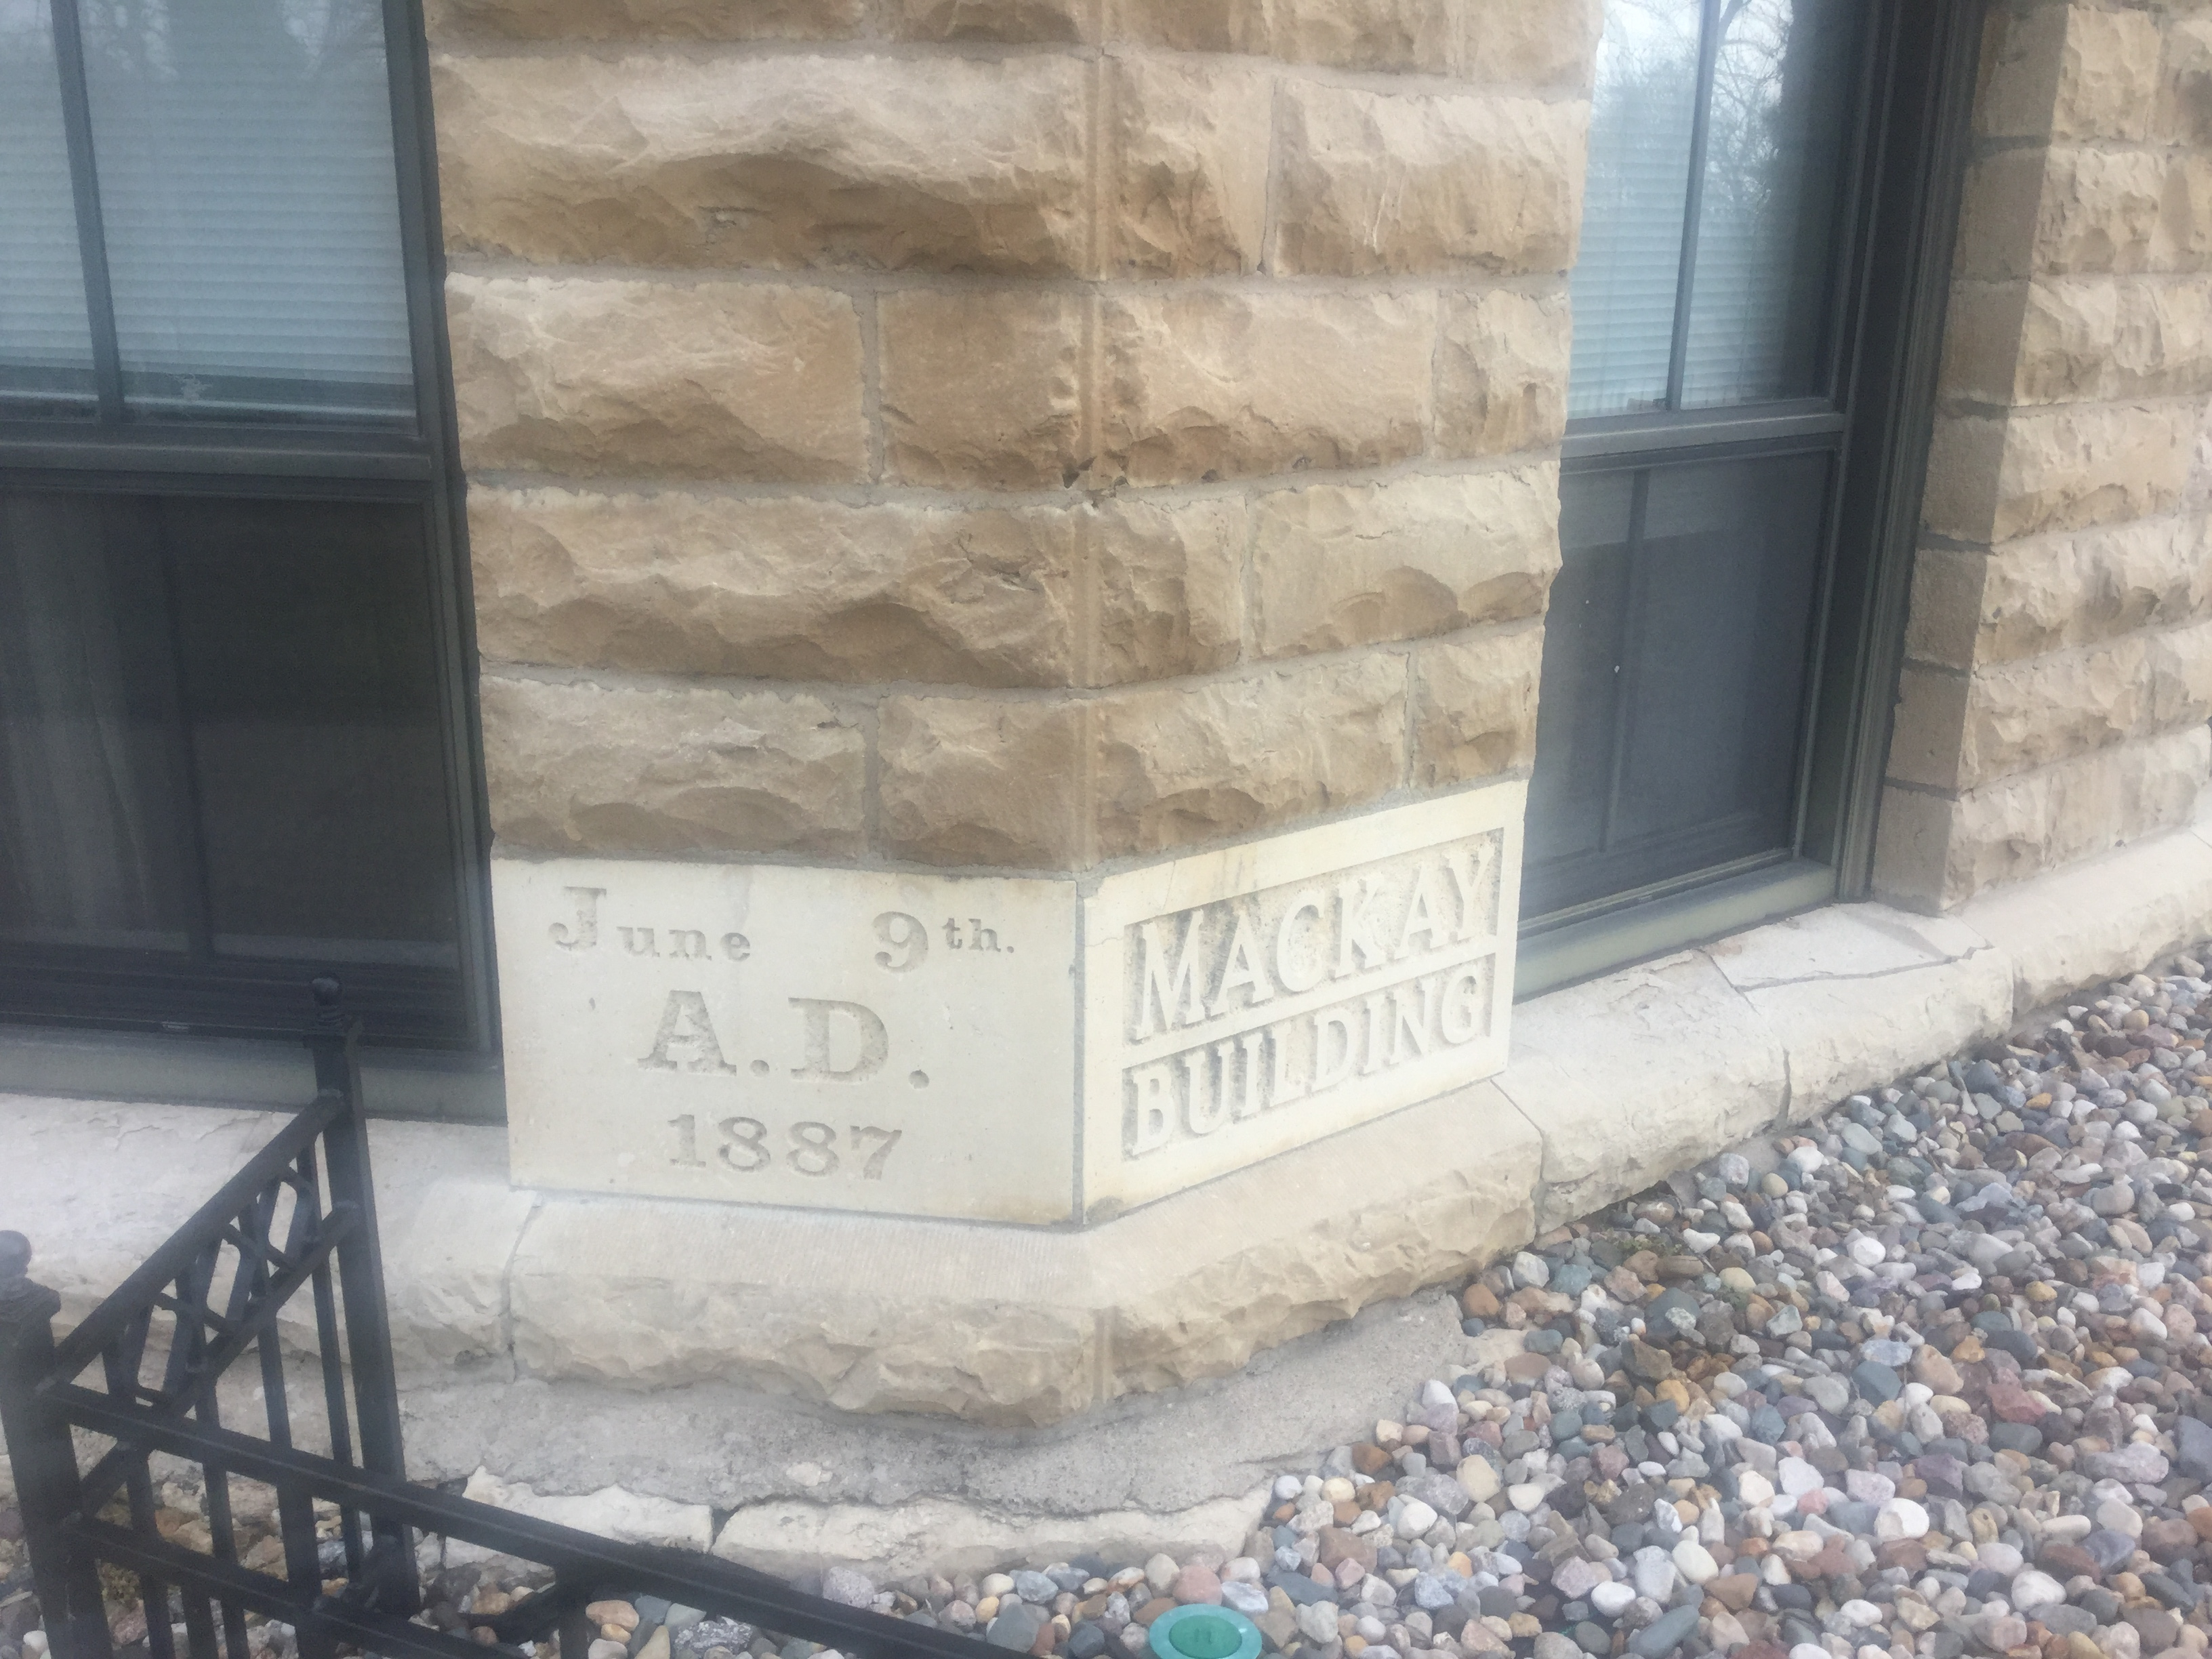 The MacKay cornerstone which was replaced during renovations